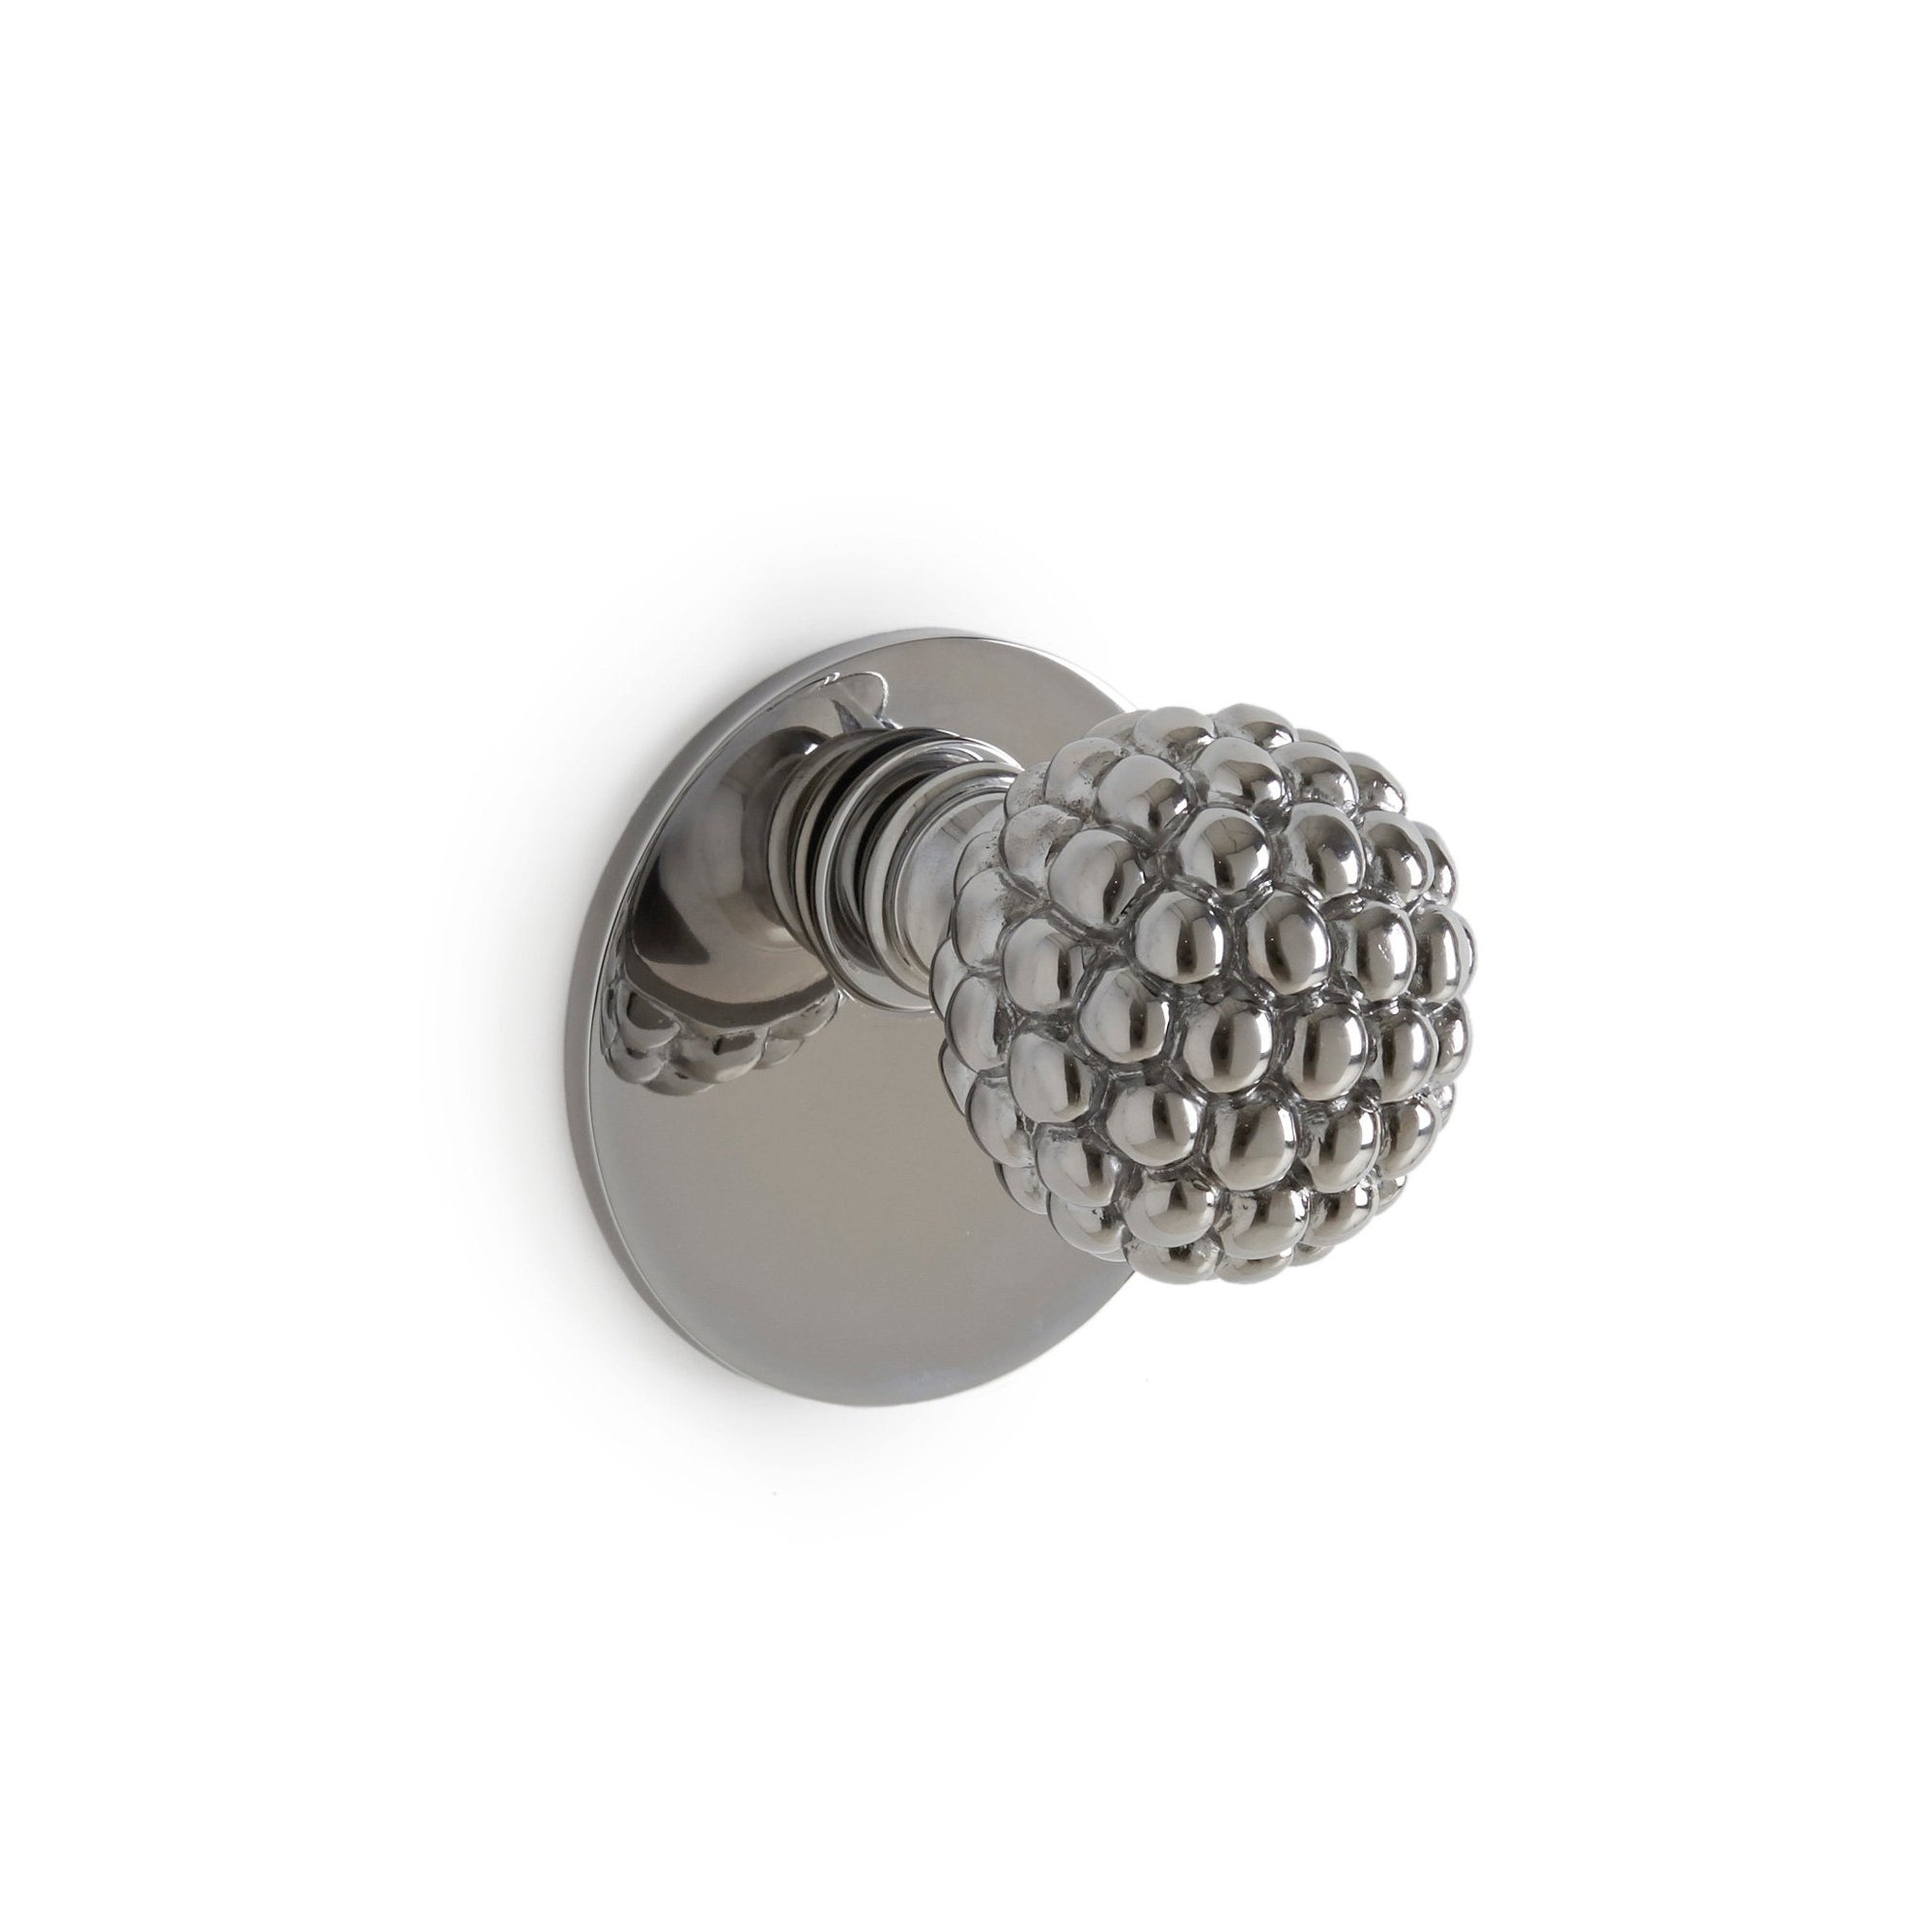 1083DOR-CP Sherle Wagner International Berry Door Knob in Polished Chrome metal finish